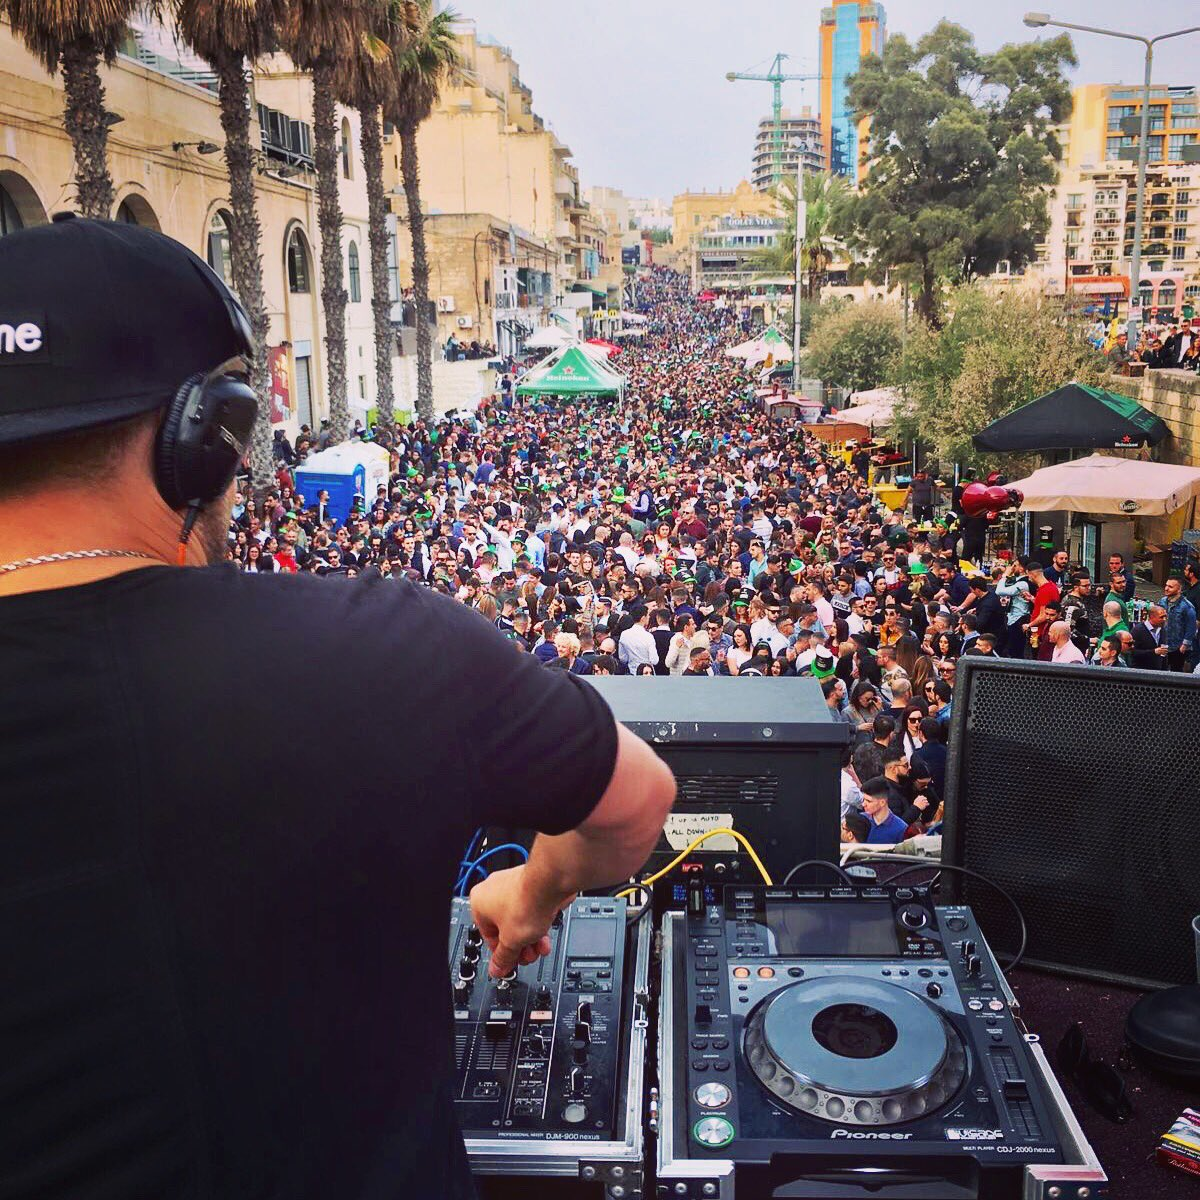 #Malta knows how to party... 🇲🇹🇲🇹🇲🇹😉 https://t.co/Ig38KiI5oM